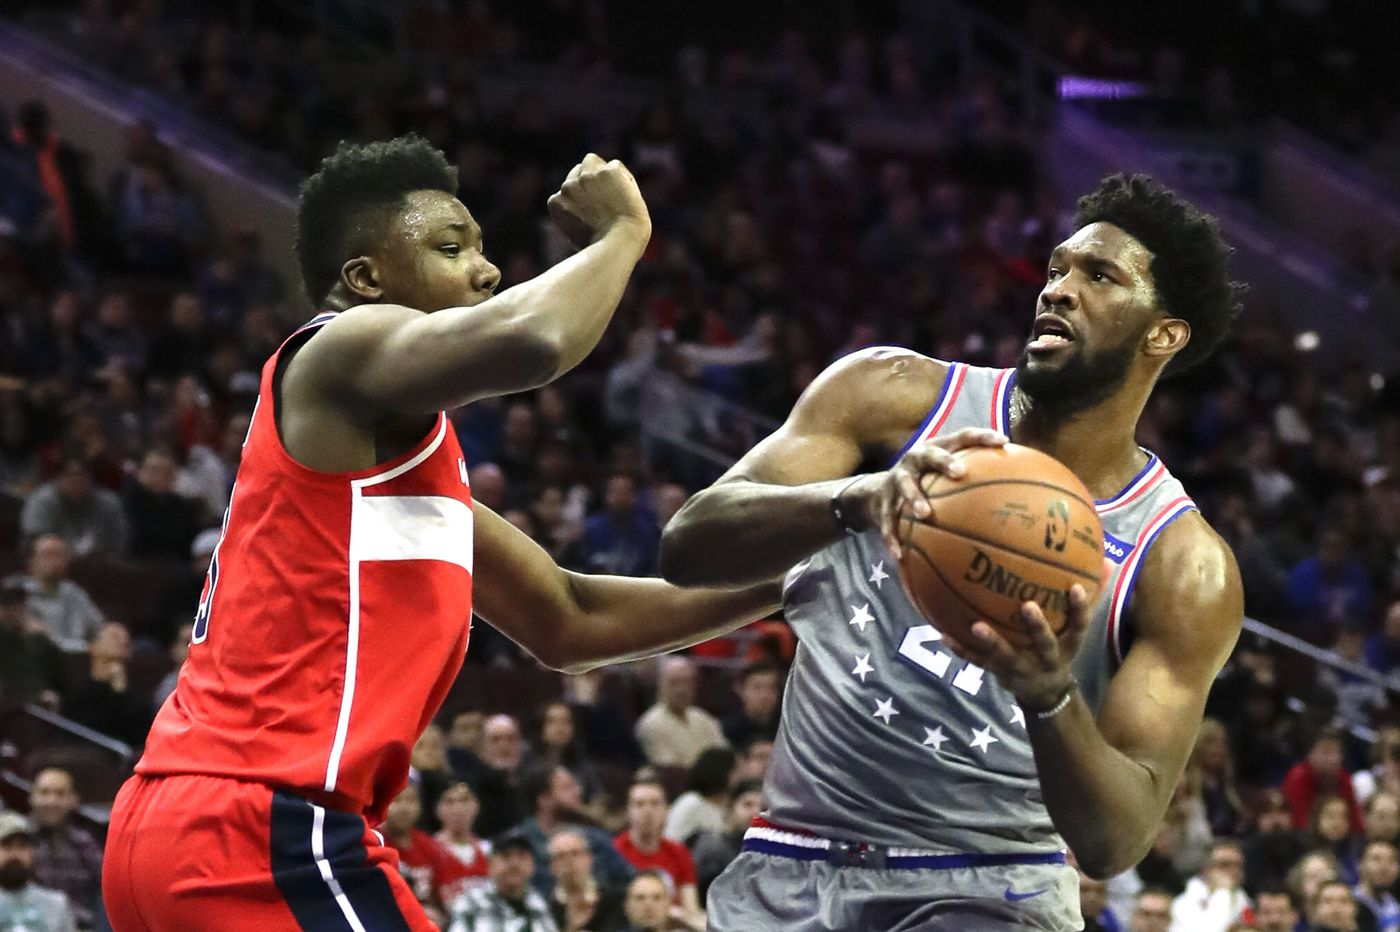 Joel Embiid says his new role after 76ers' trade for Jimmy Butler is upsetting his game